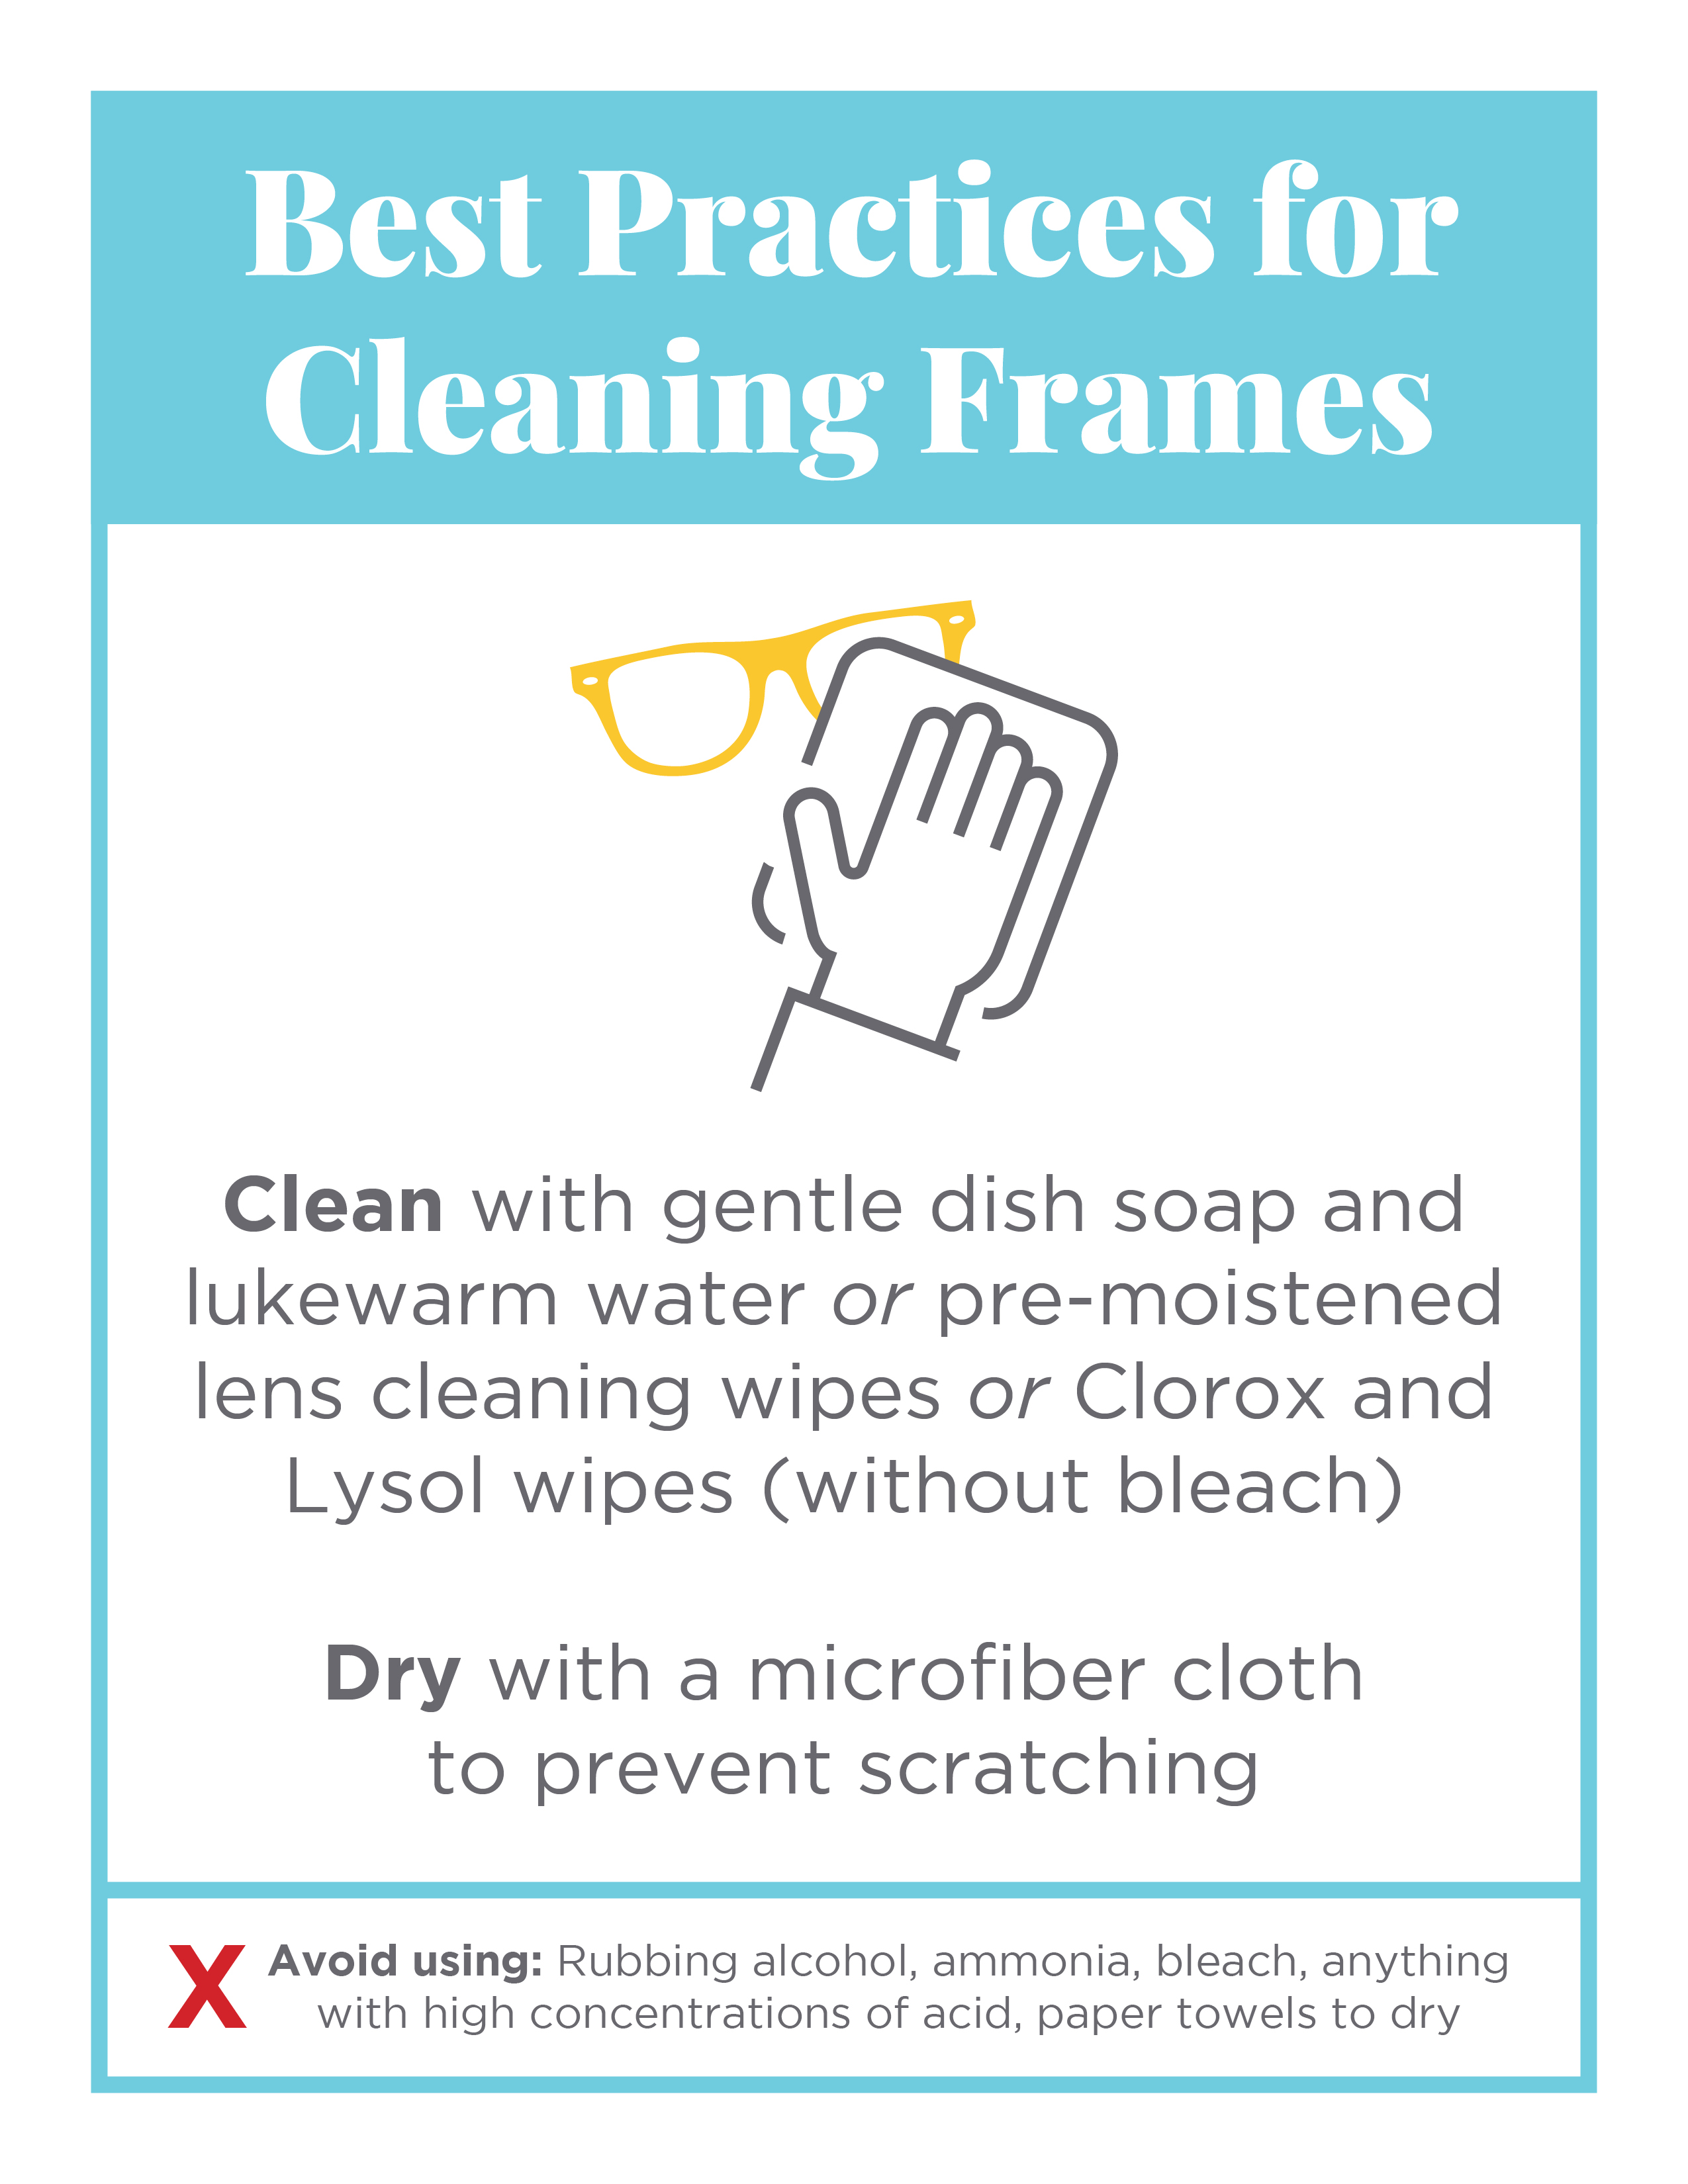 COVID19_BestPracticesForCleaningFrames_Flyer